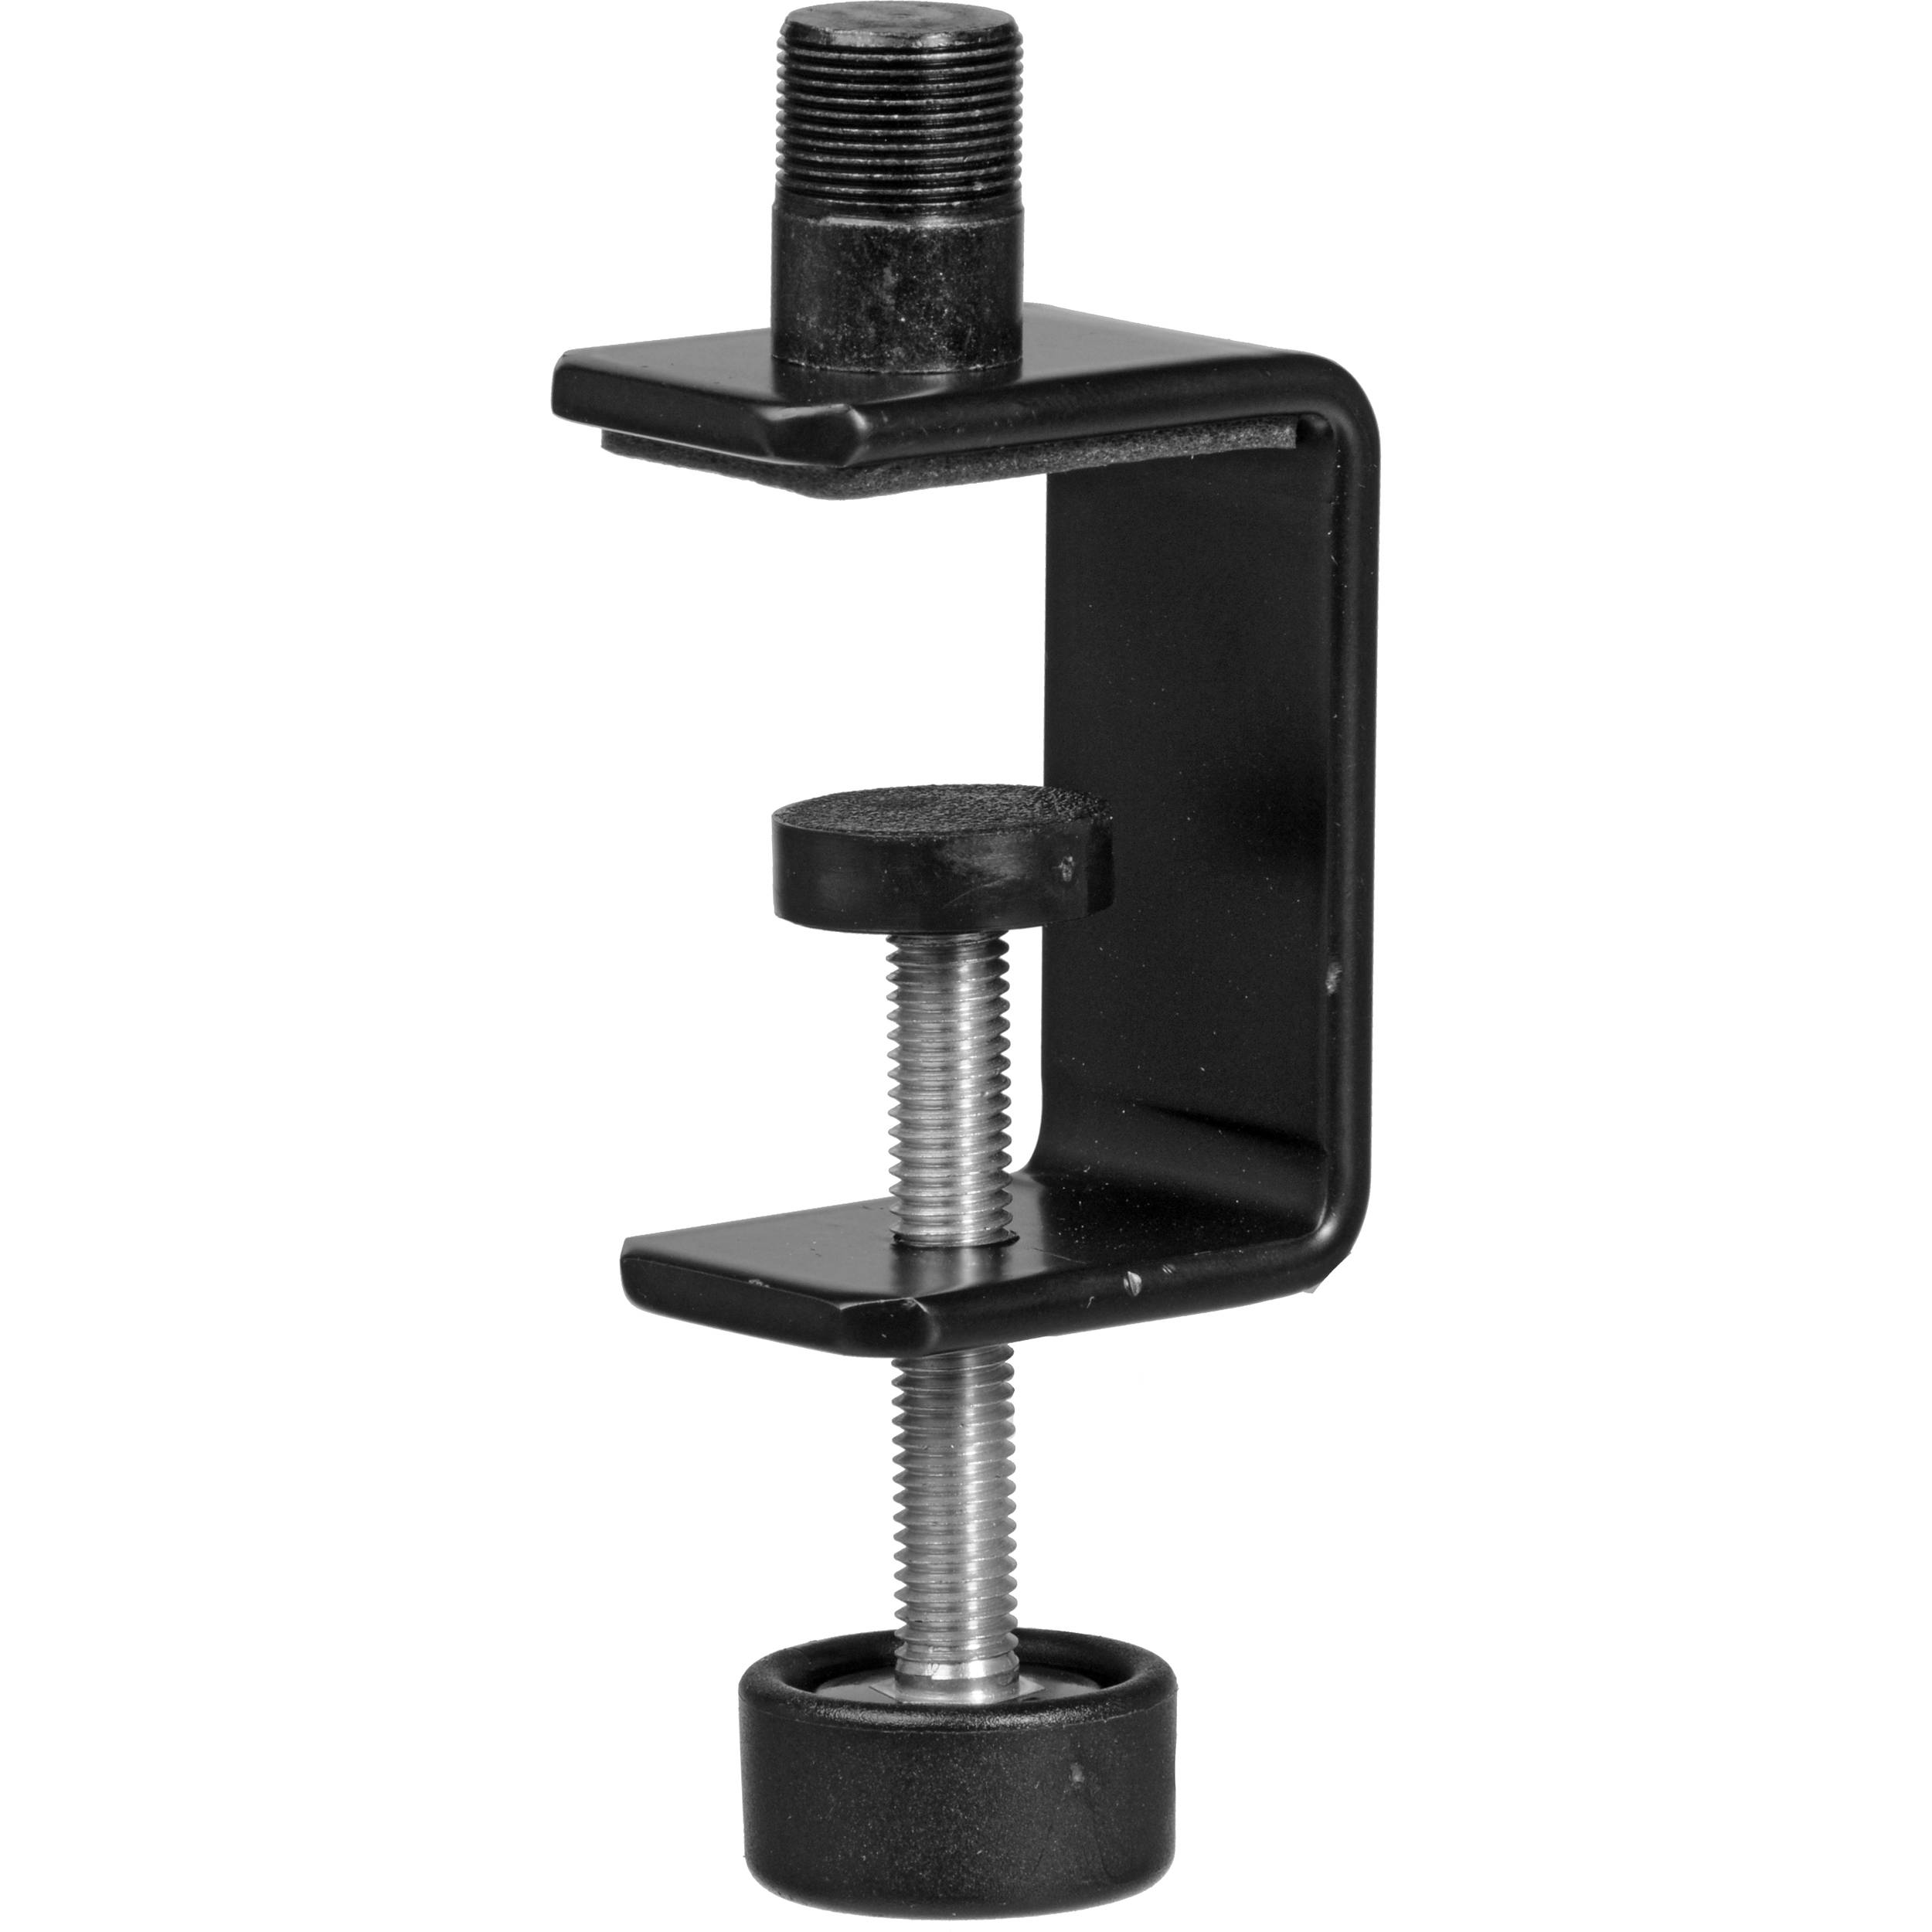 K Amp M 237b Table Clamp Black 23700 500 55 B Amp H Photo Video